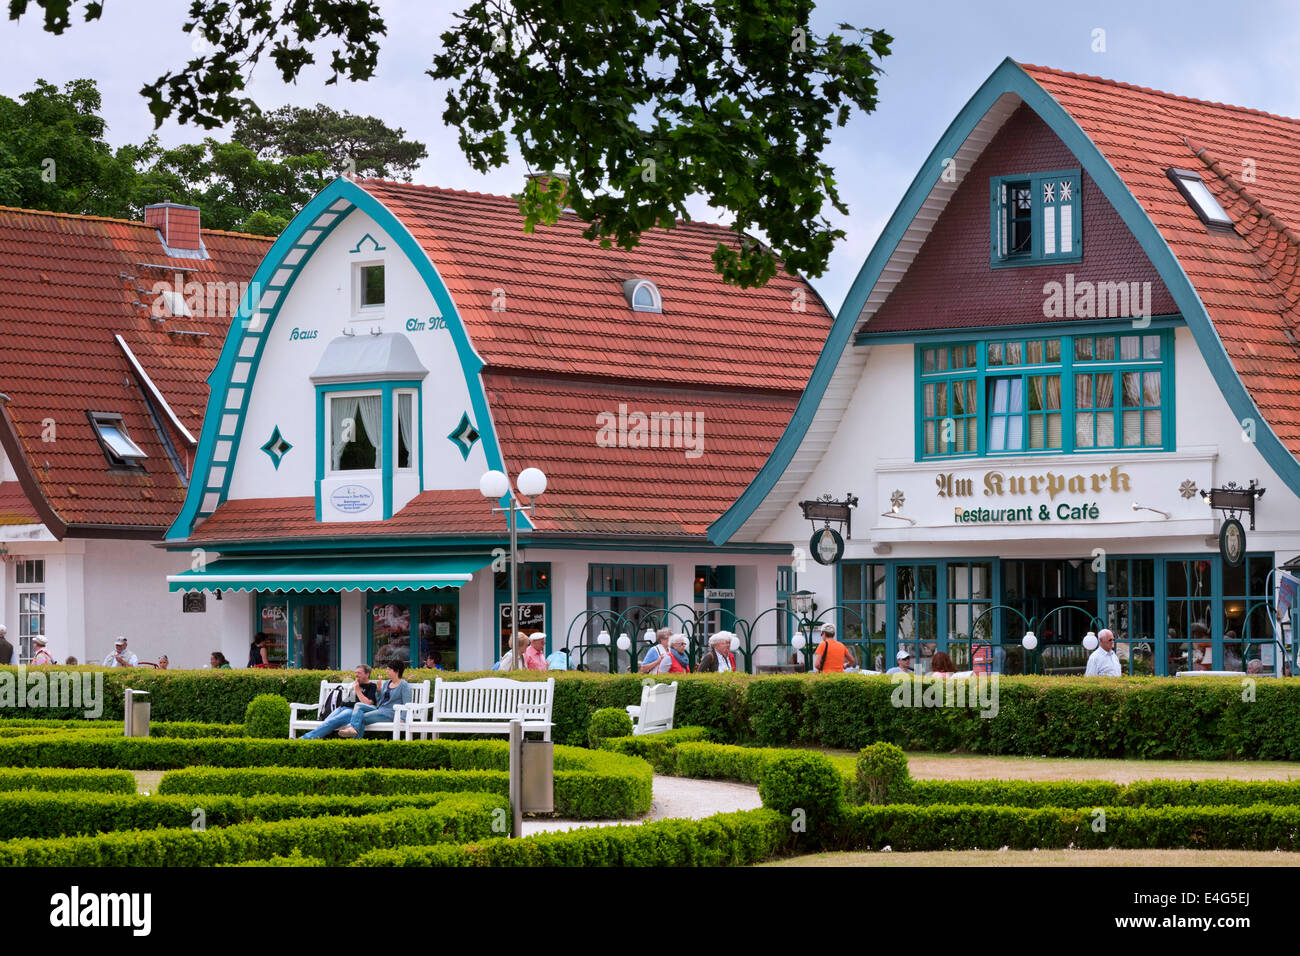 Restaurants and cafés in traditional style at Boltenhagen, seaside resort along the Baltic Sea, Mecklenburg - Stock Image